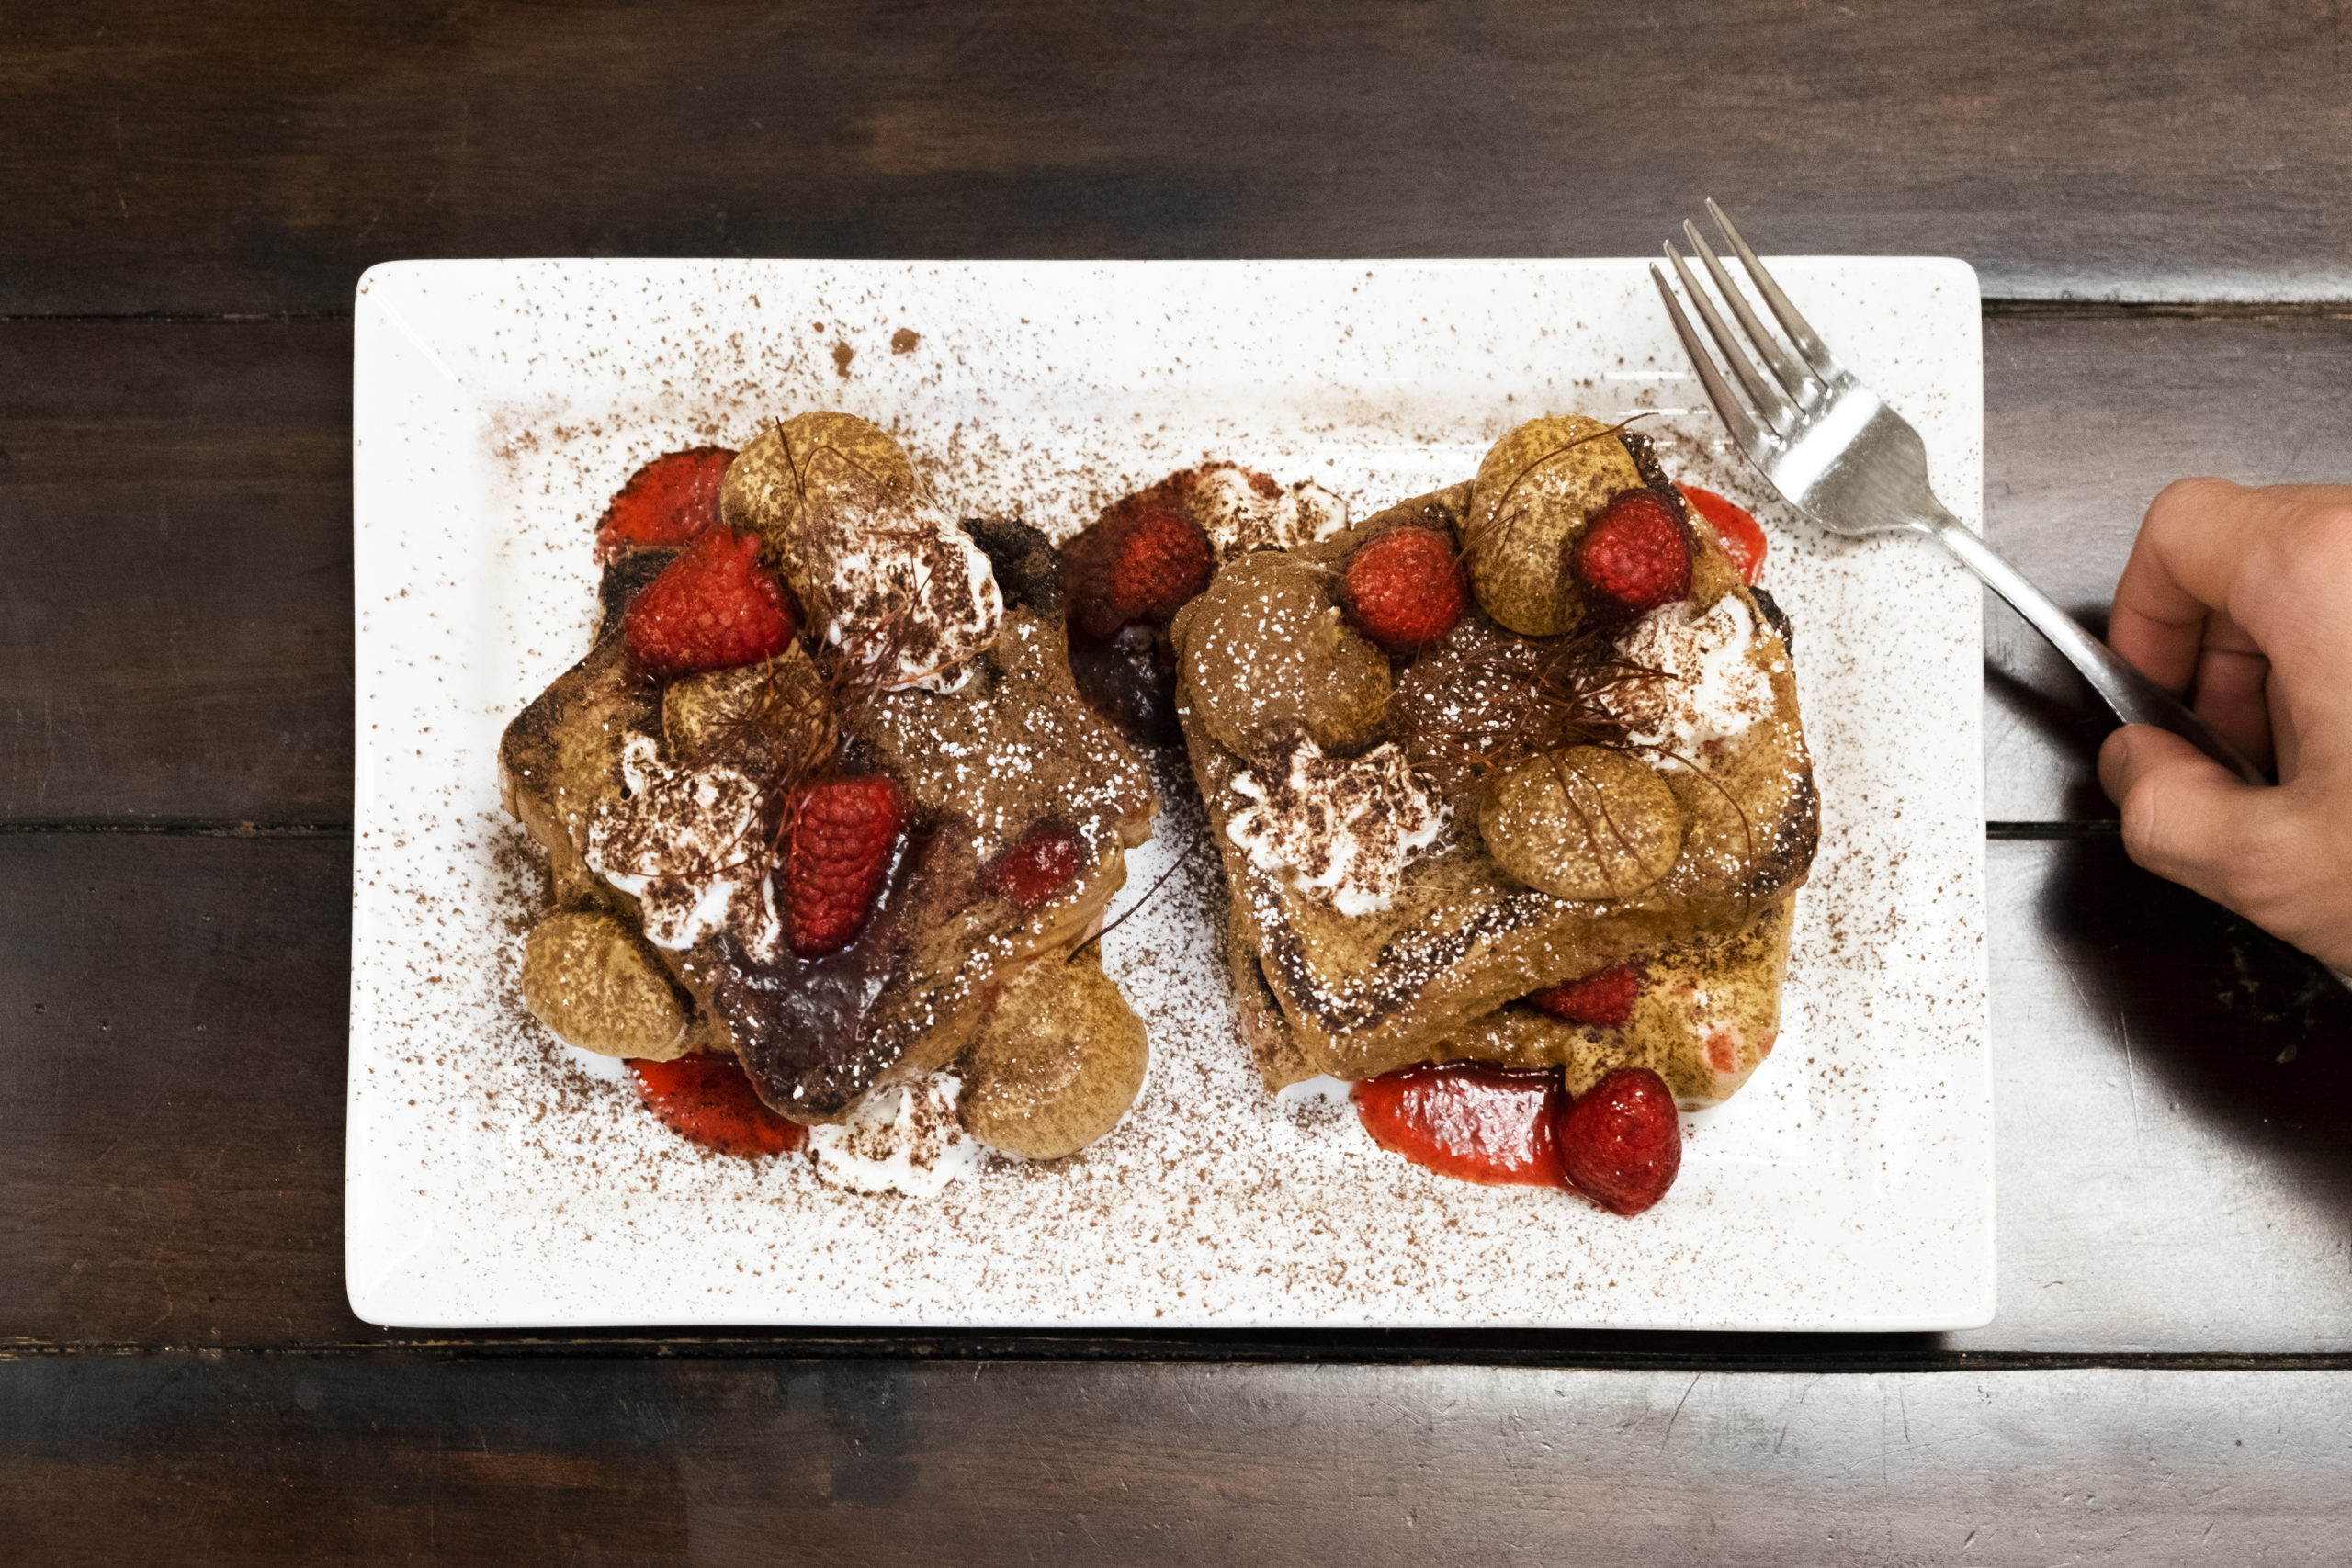 French toast on a white plate, topped with cannabis-infused dalgona coffee cream and spicy raspberry coulis.